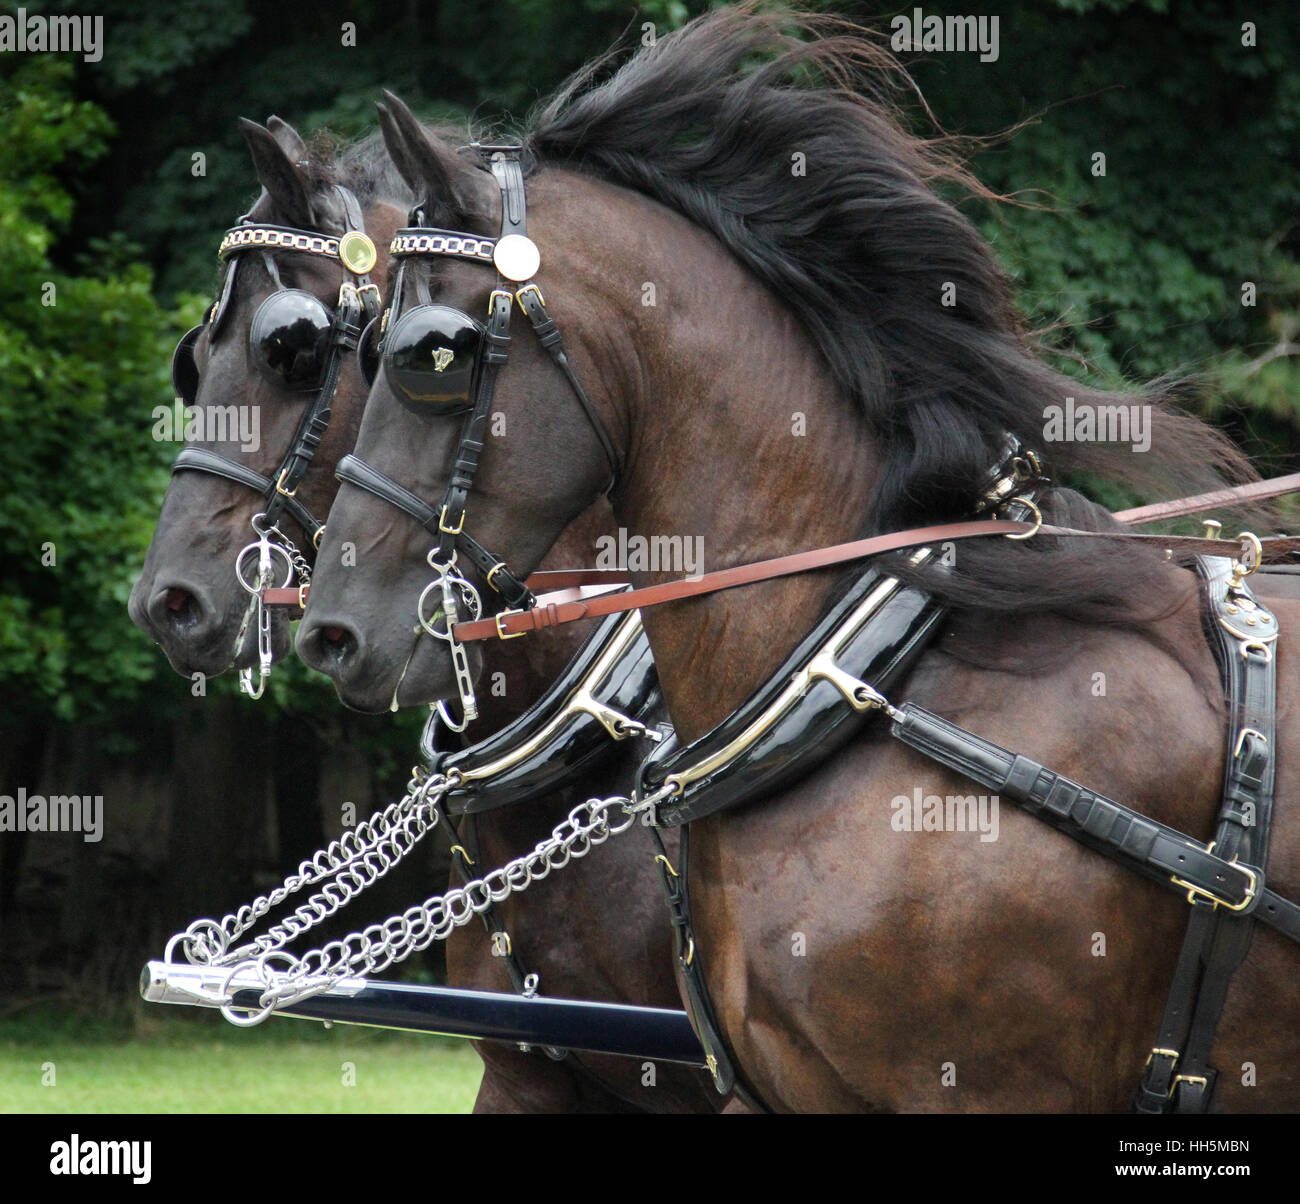 A striking pair of perfectly matched driving horses - Stock Image